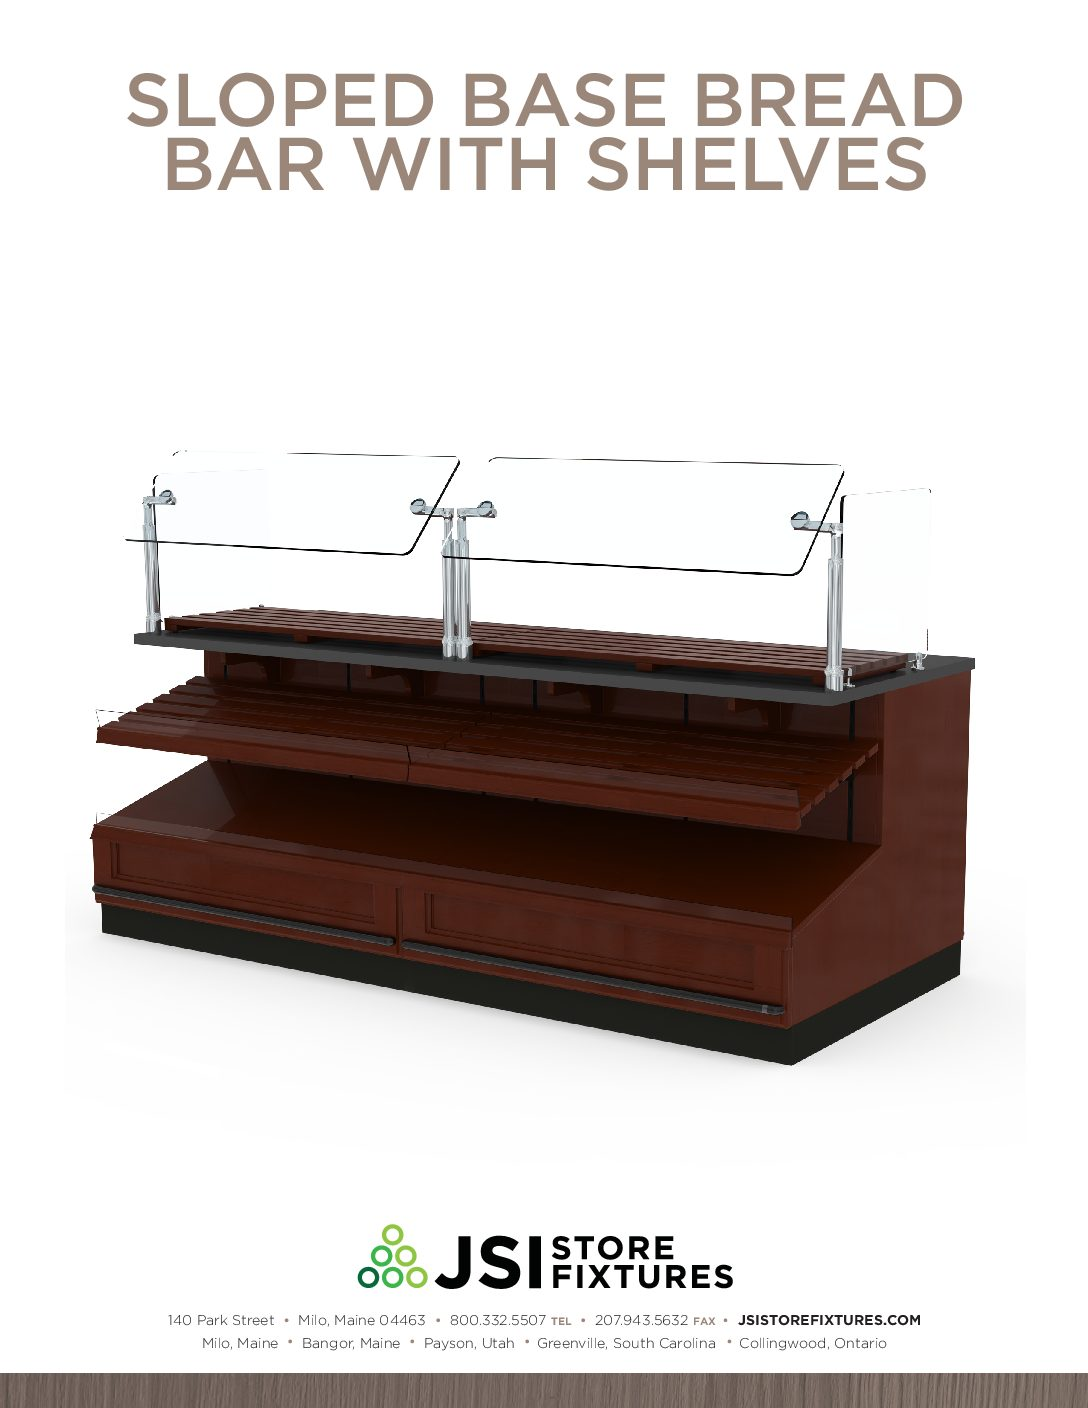 Sloped Base Bread Bar with Shelves Spec Sheet